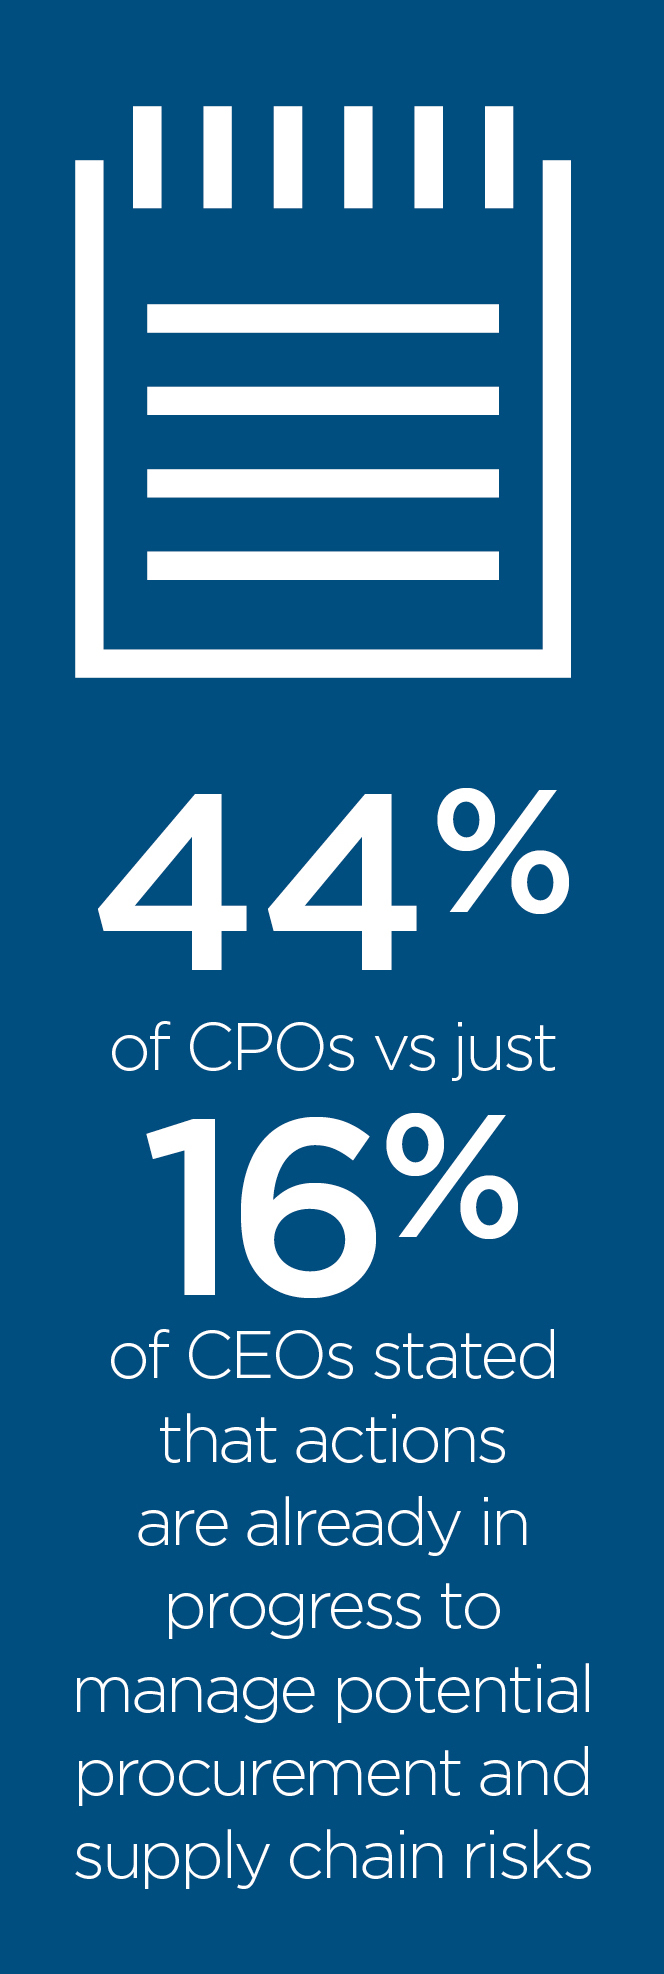 CPO vs CEO views on procurement & supply chain risks